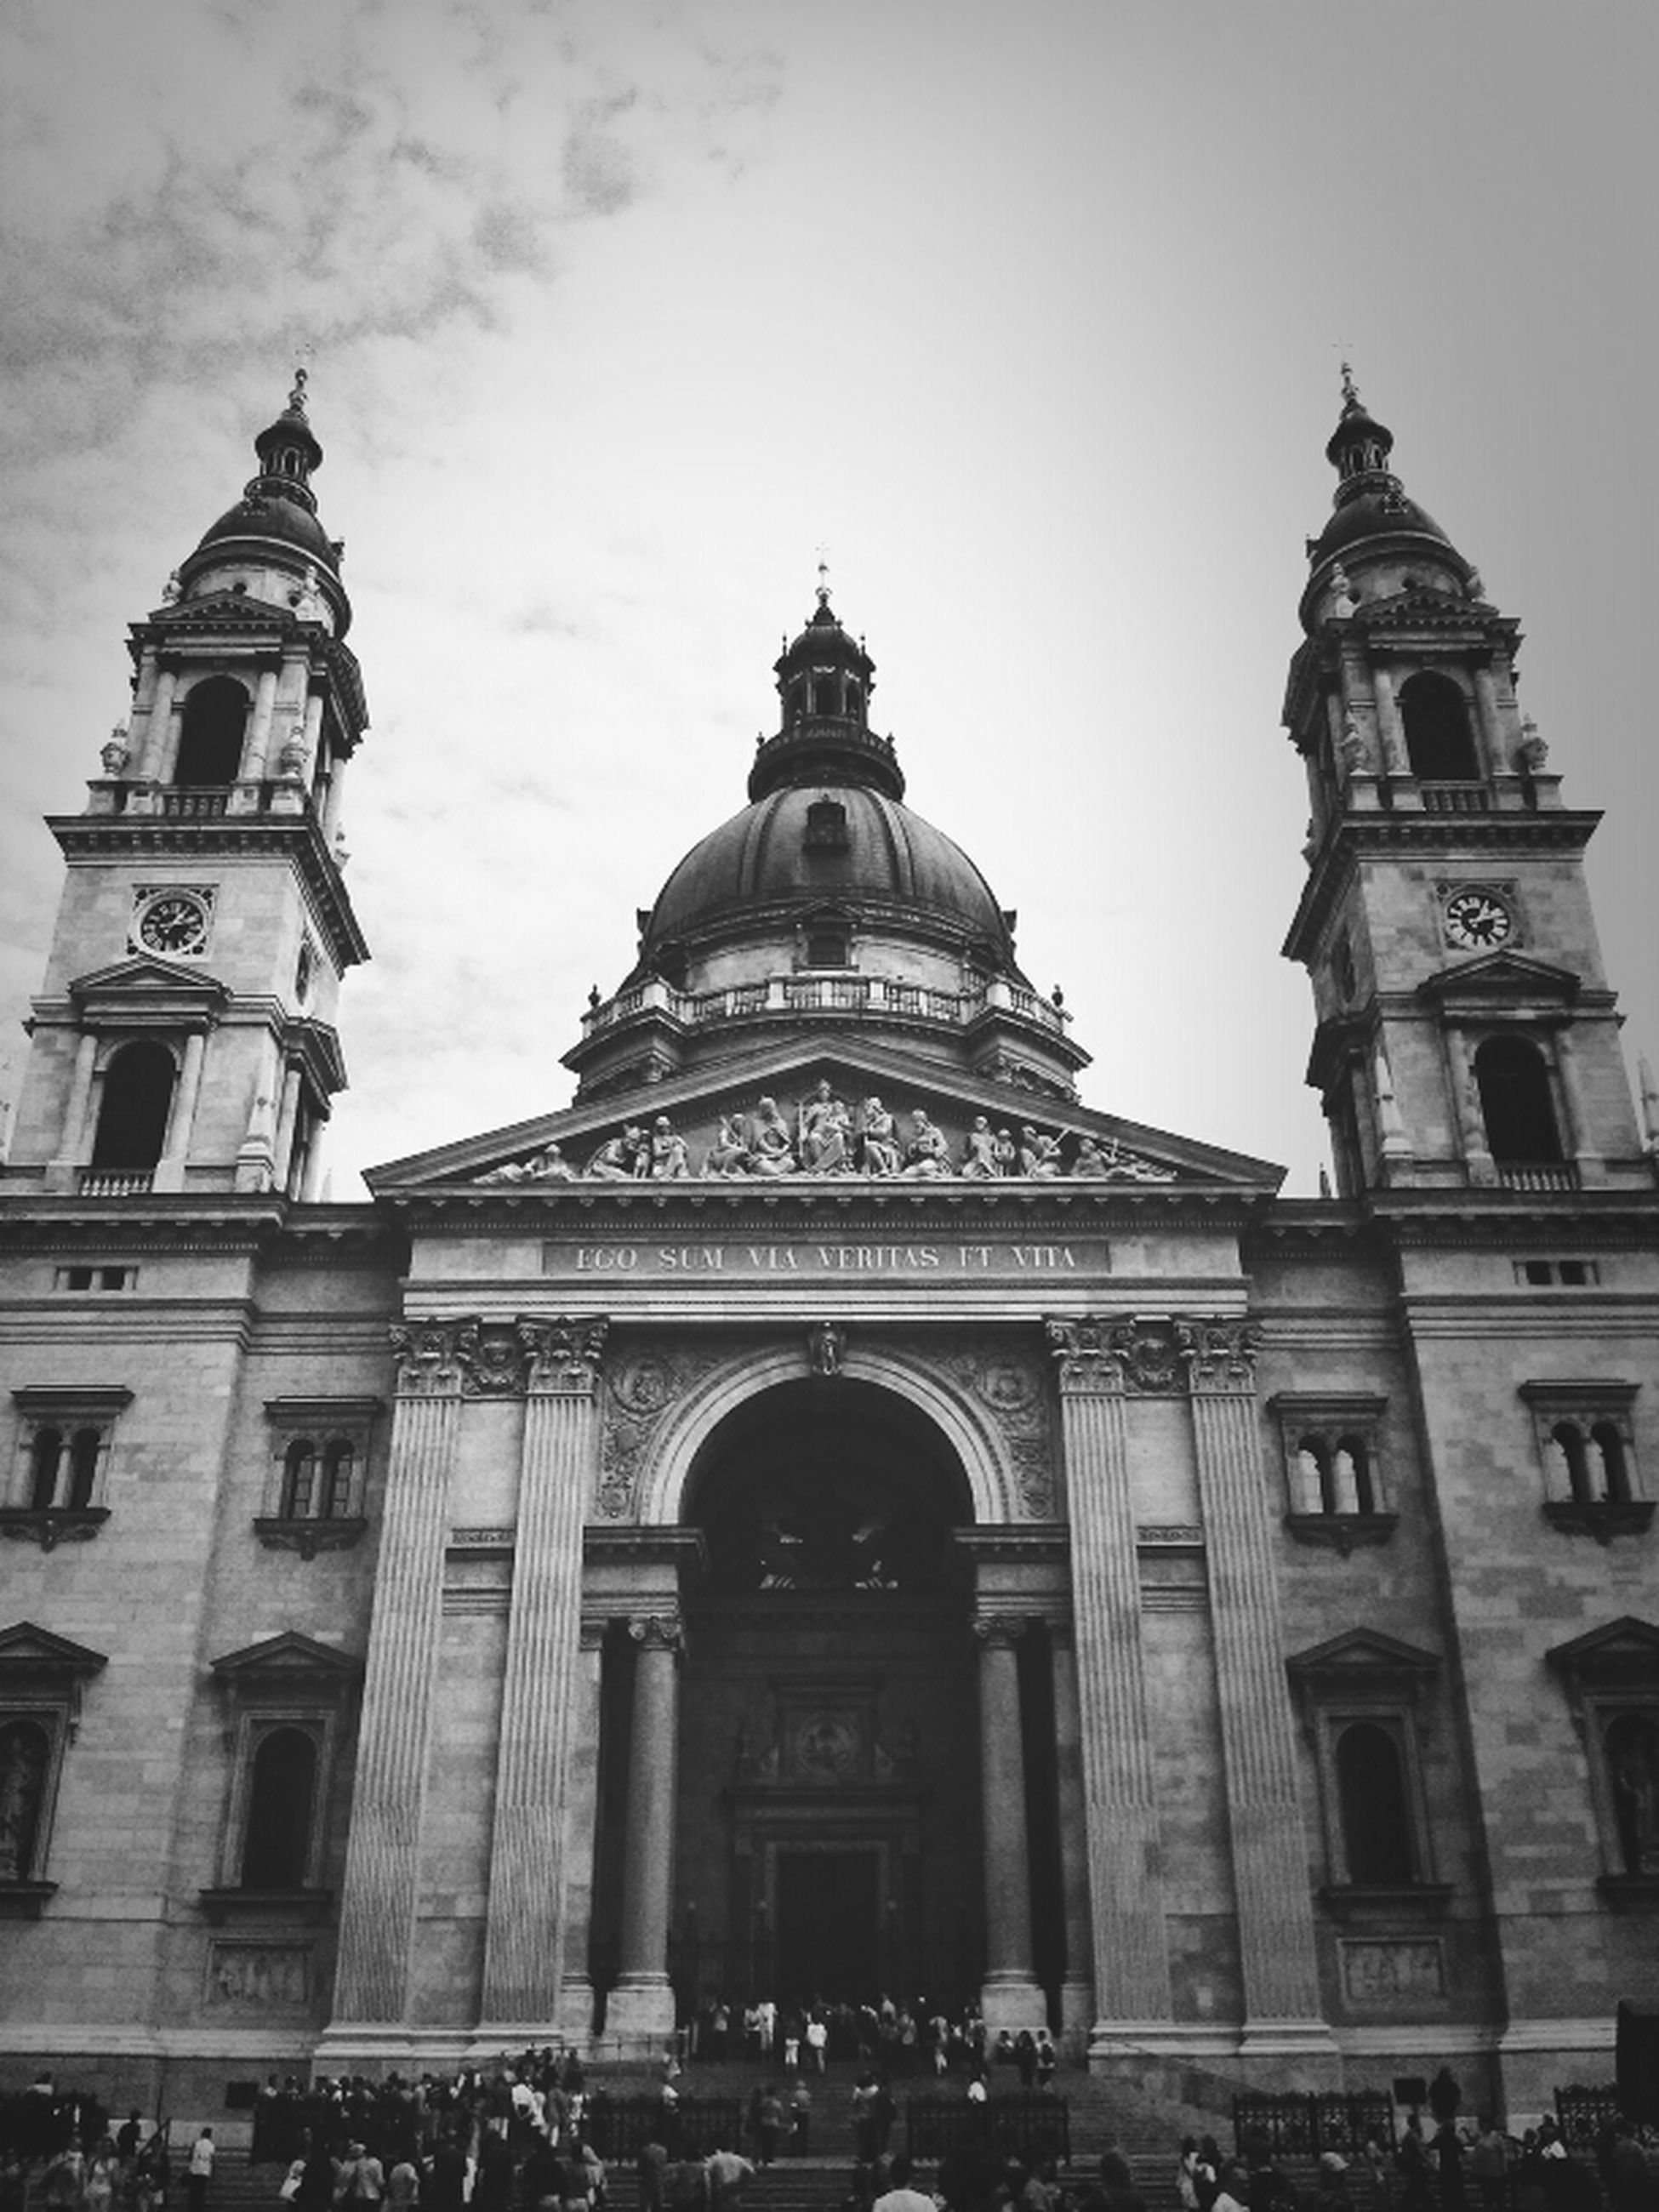 architecture, building exterior, religion, place of worship, church, built structure, spirituality, low angle view, cathedral, sky, facade, dome, travel destinations, history, famous place, cross, arch, day